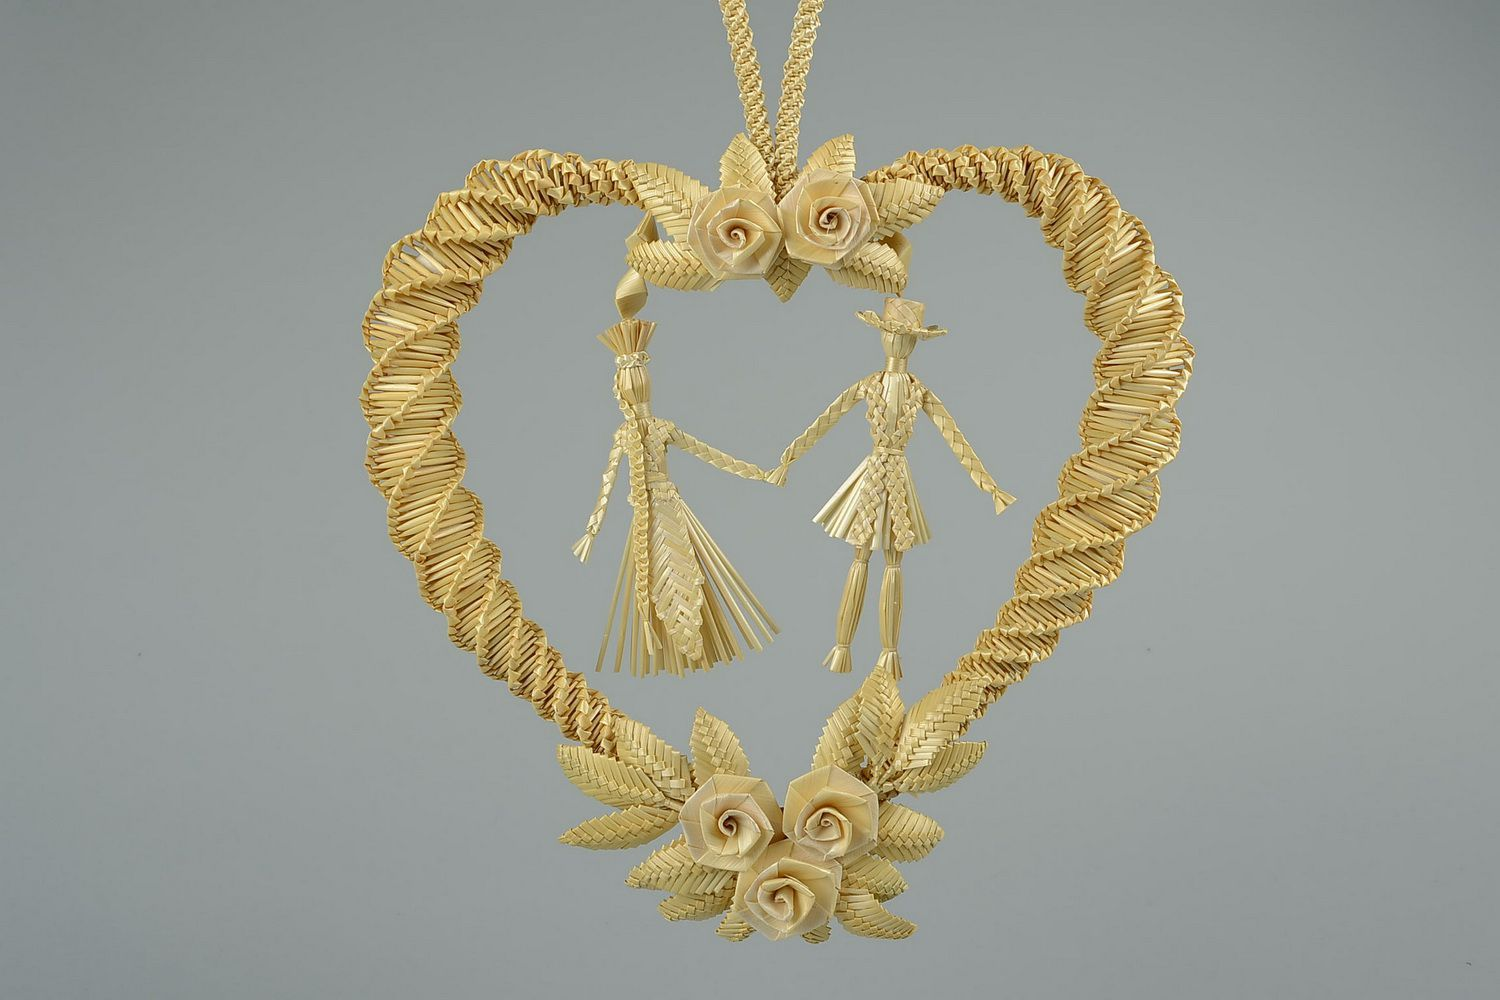 wedding accessories Woven wedding straw charm - MADEheart.com